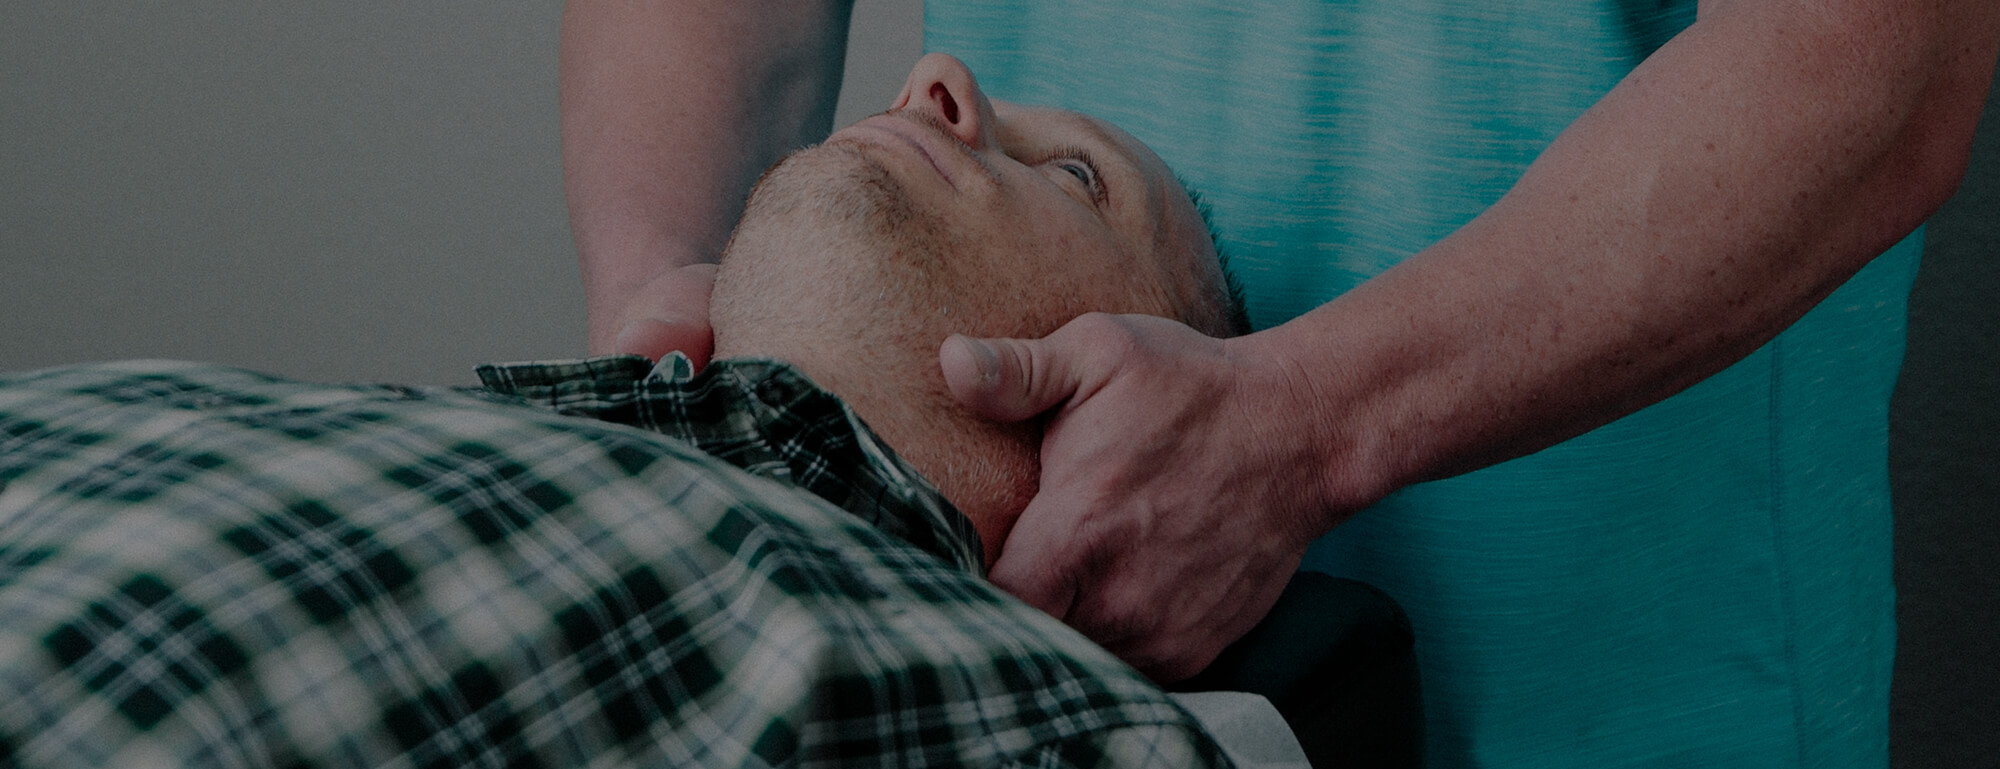 Dr. Day performing a neck adjustment for a personal injury chiropractor patient.